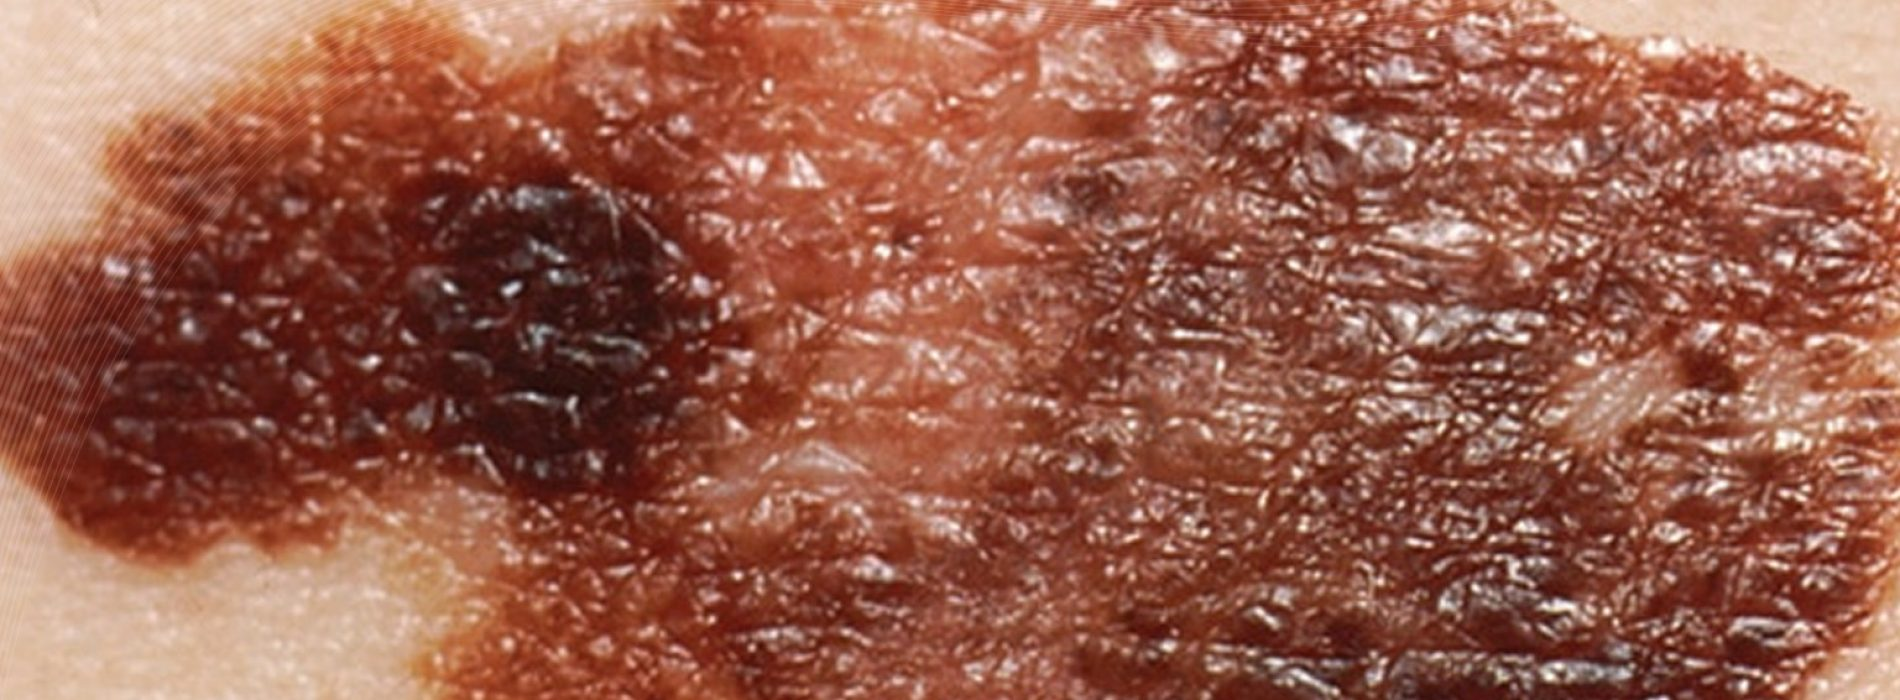 Trials show that virus-based skin cancer therapy could be a good alternative for non-operable cases